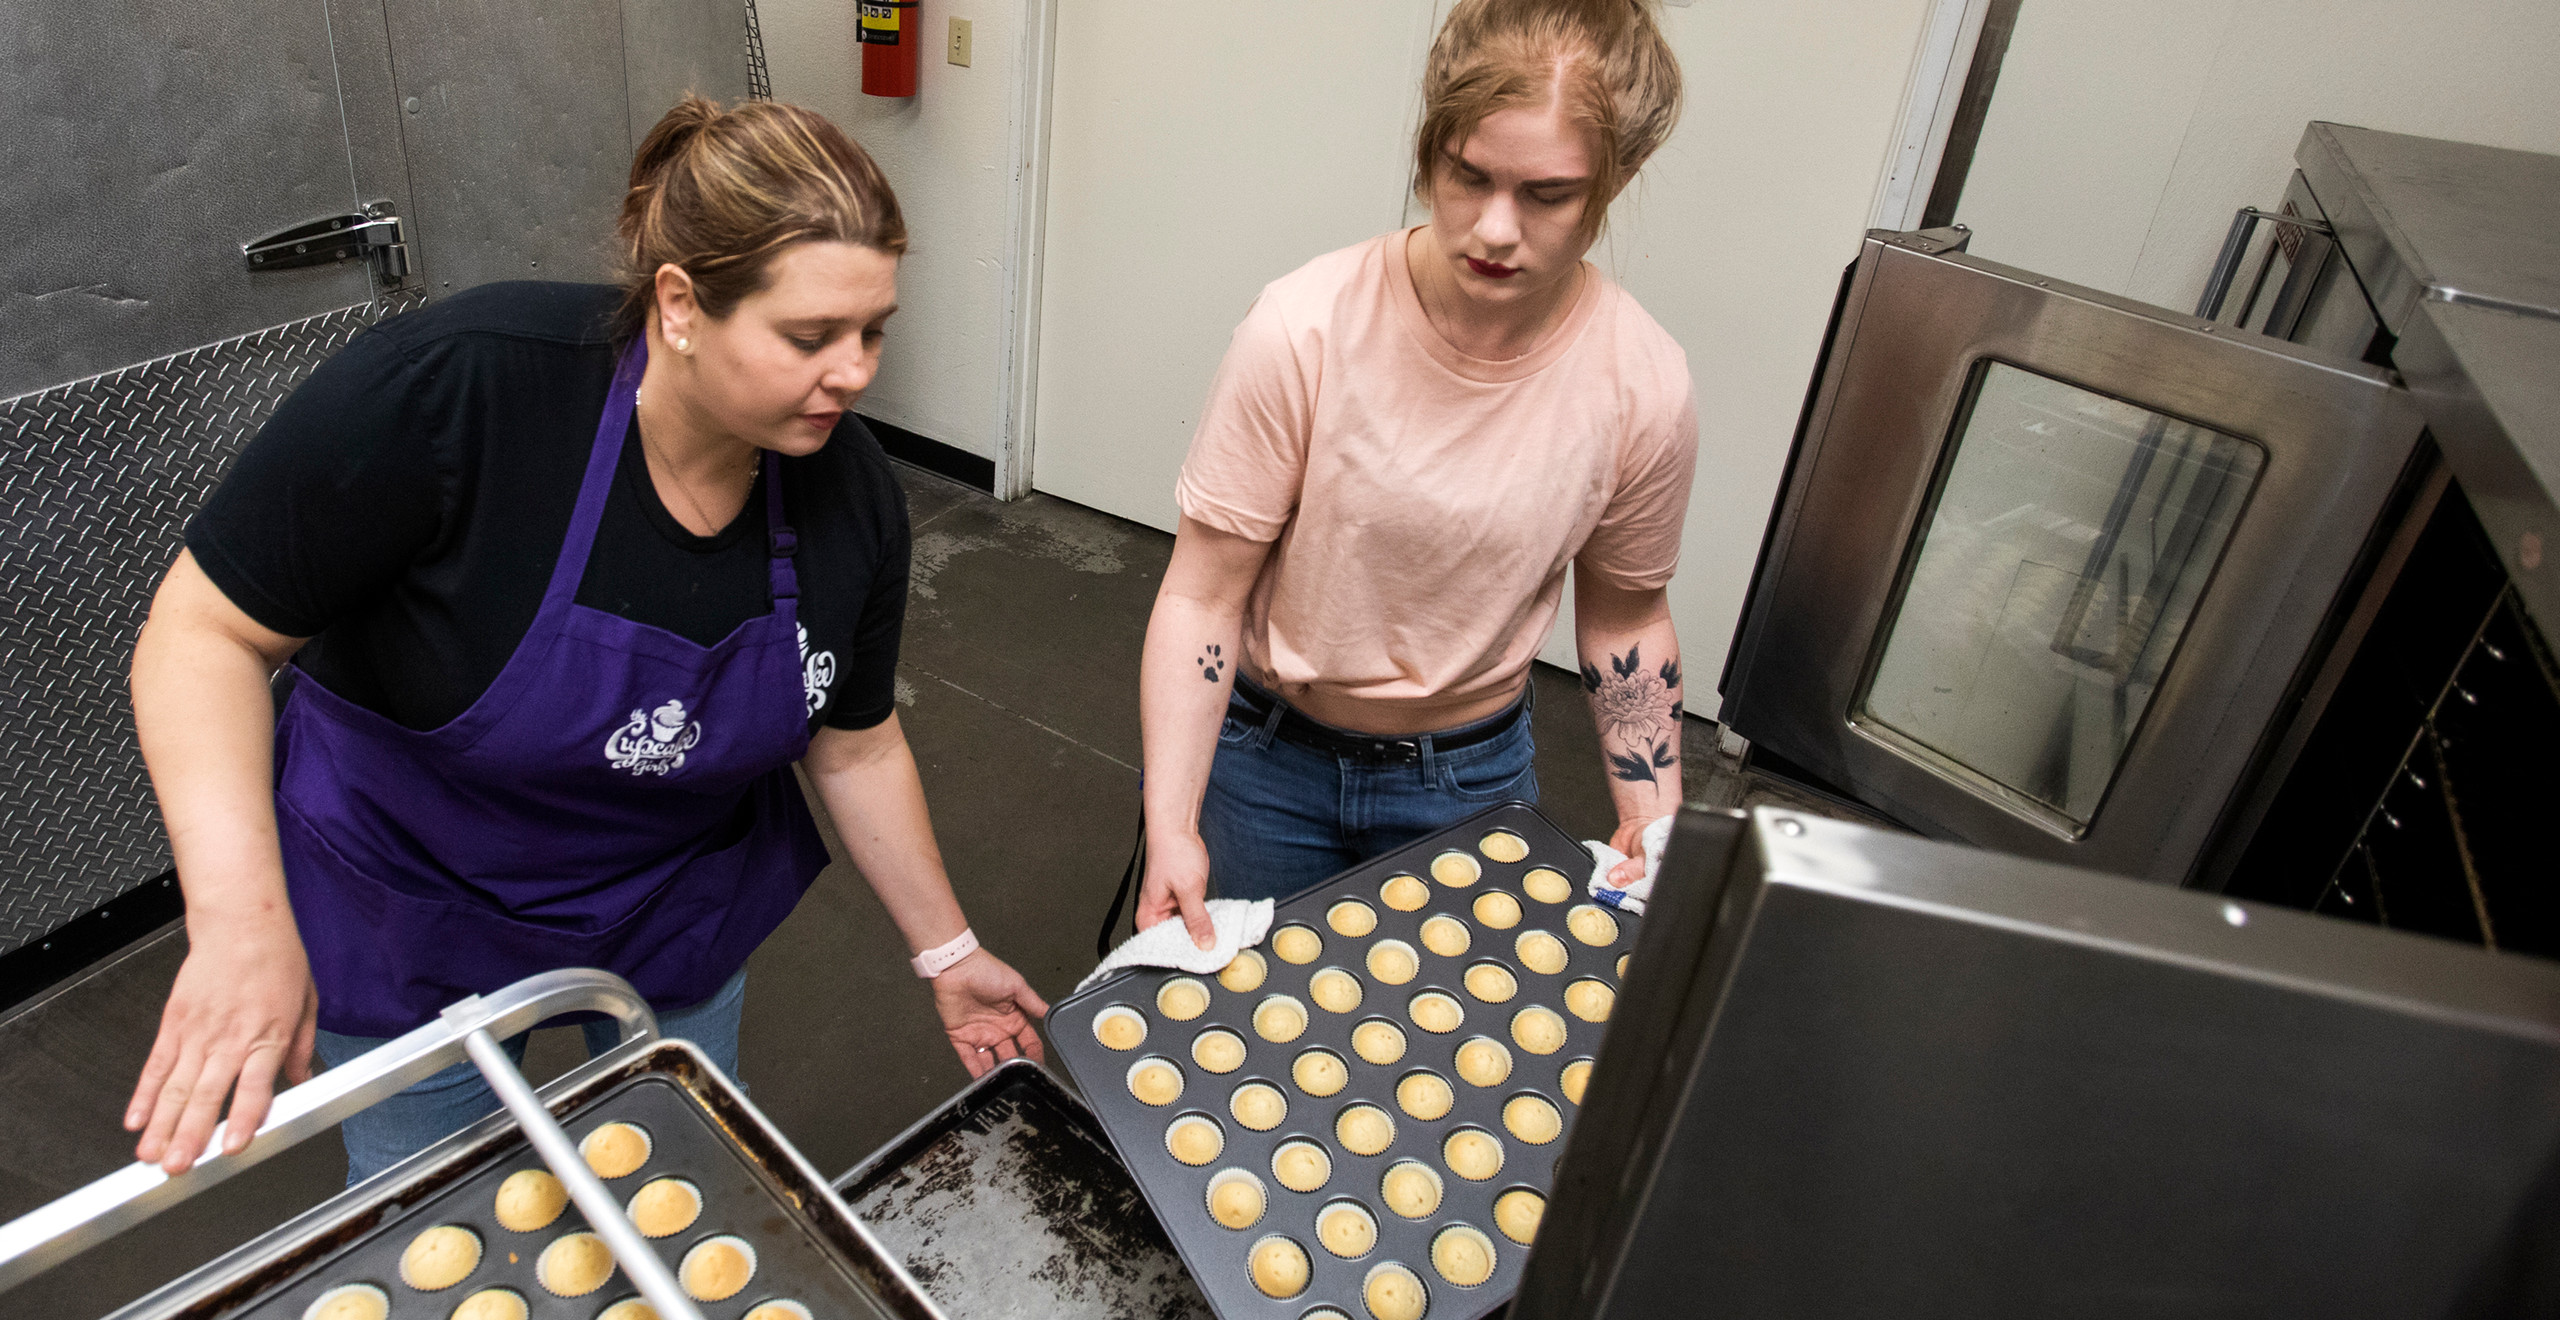 The purple-aproned volunteer and another volunteer in a pink tshirt pull out two trays of freshly-baked, golden-hued mini cupcakes.